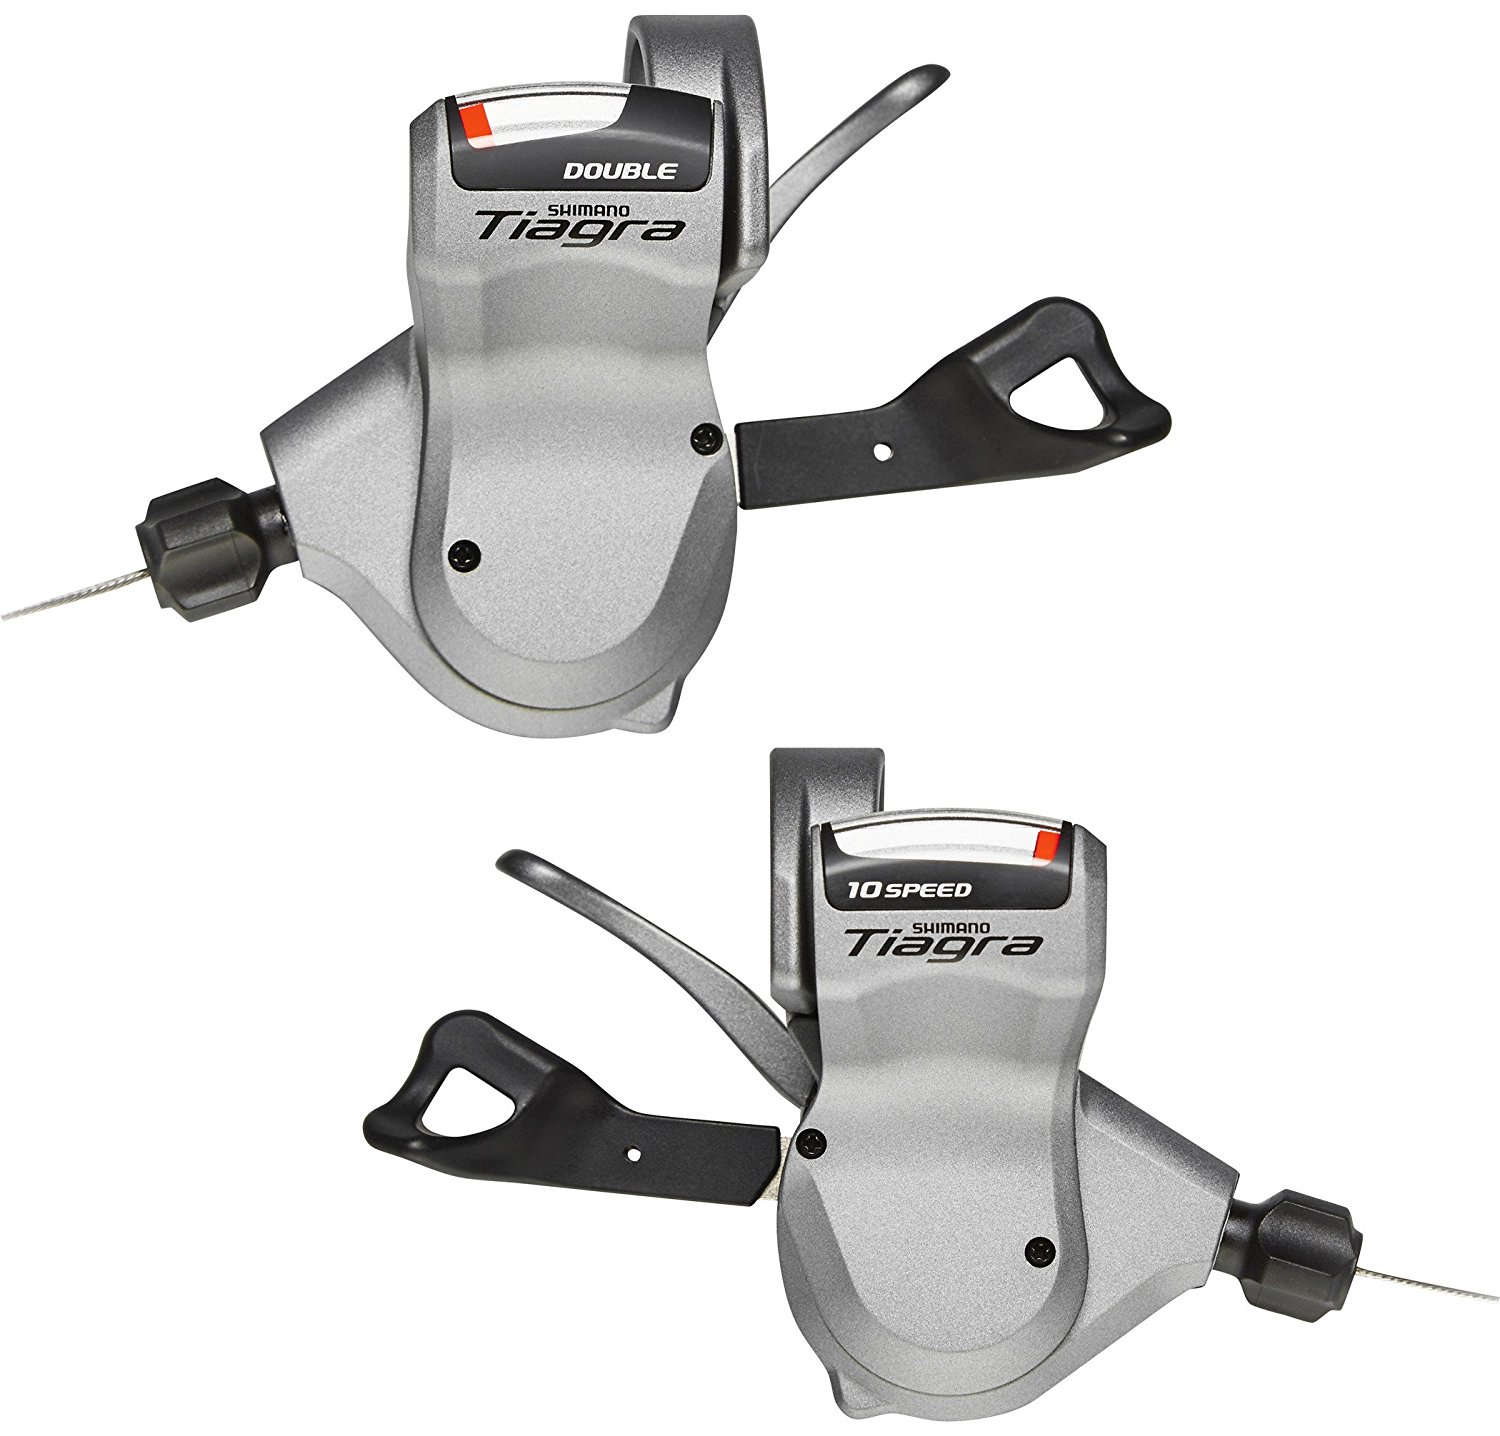 Cheap 9 Speed Tiagra Find Deals On Line At Alibabacom Fd Shimano Triagra 4700 Braze Get Quotations Sl 4600 10 Shift Levers Silver Double